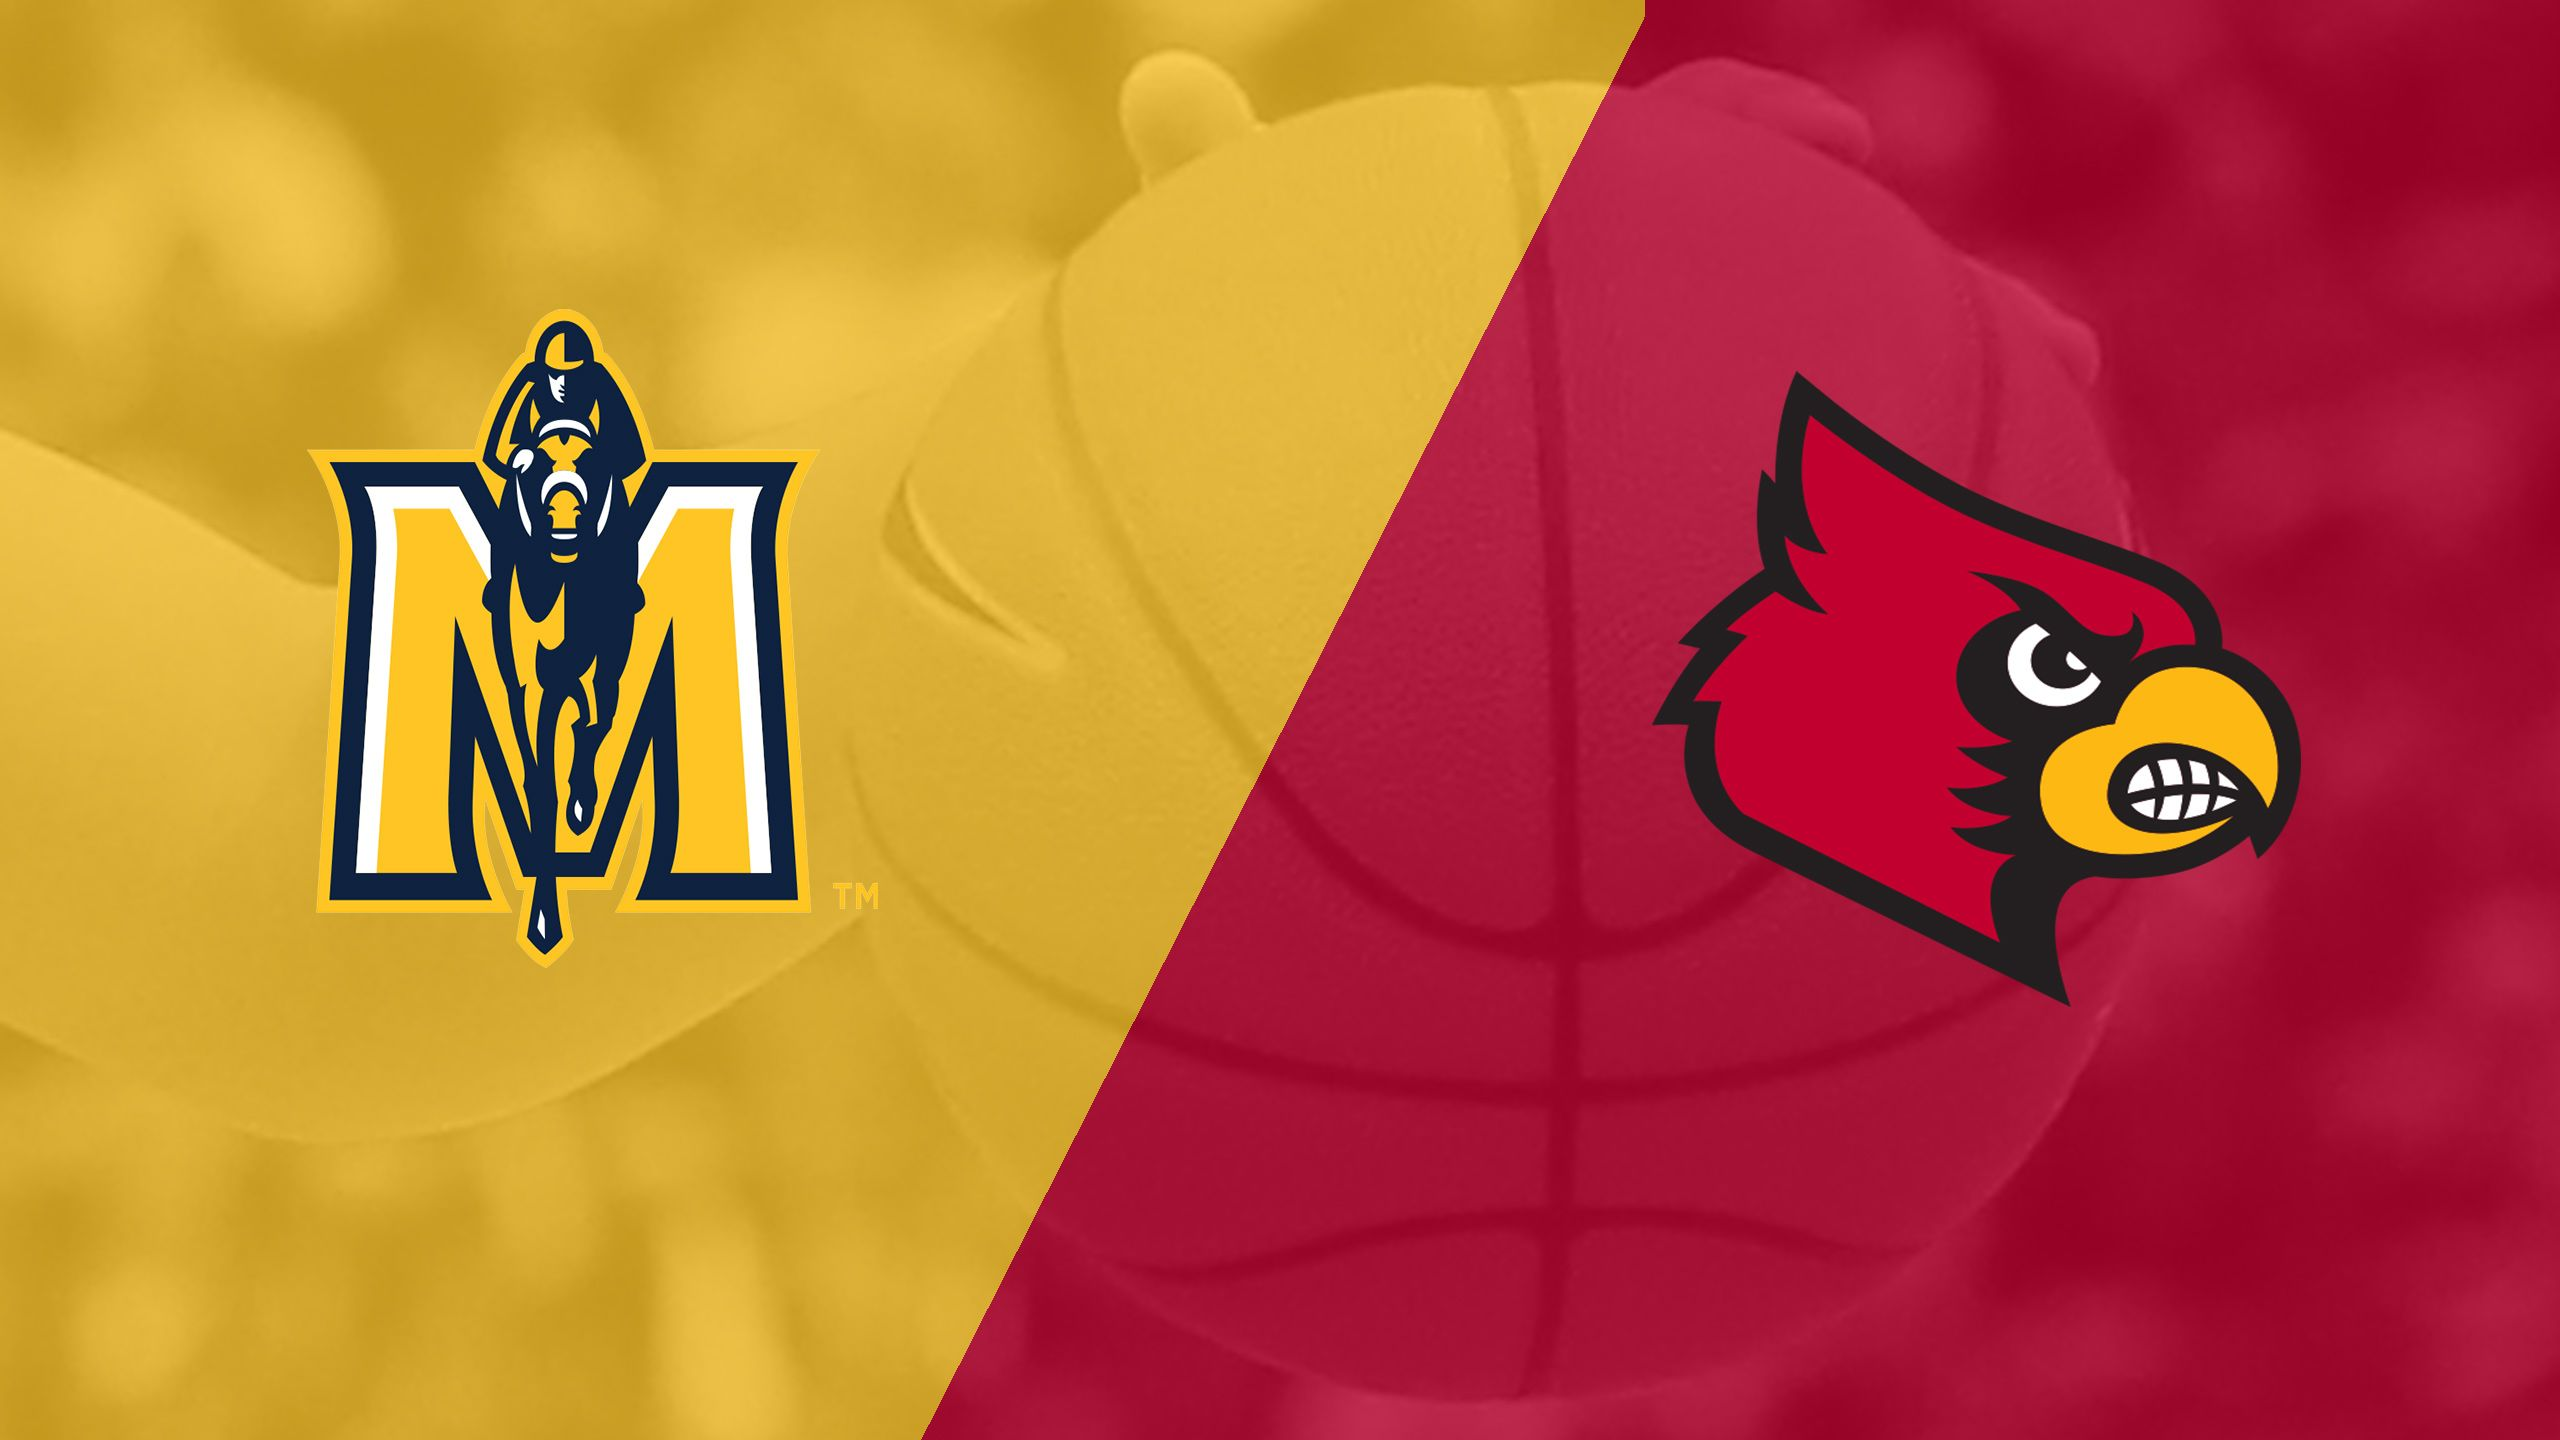 Murray State vs. #4 Louisville (W Basketball)